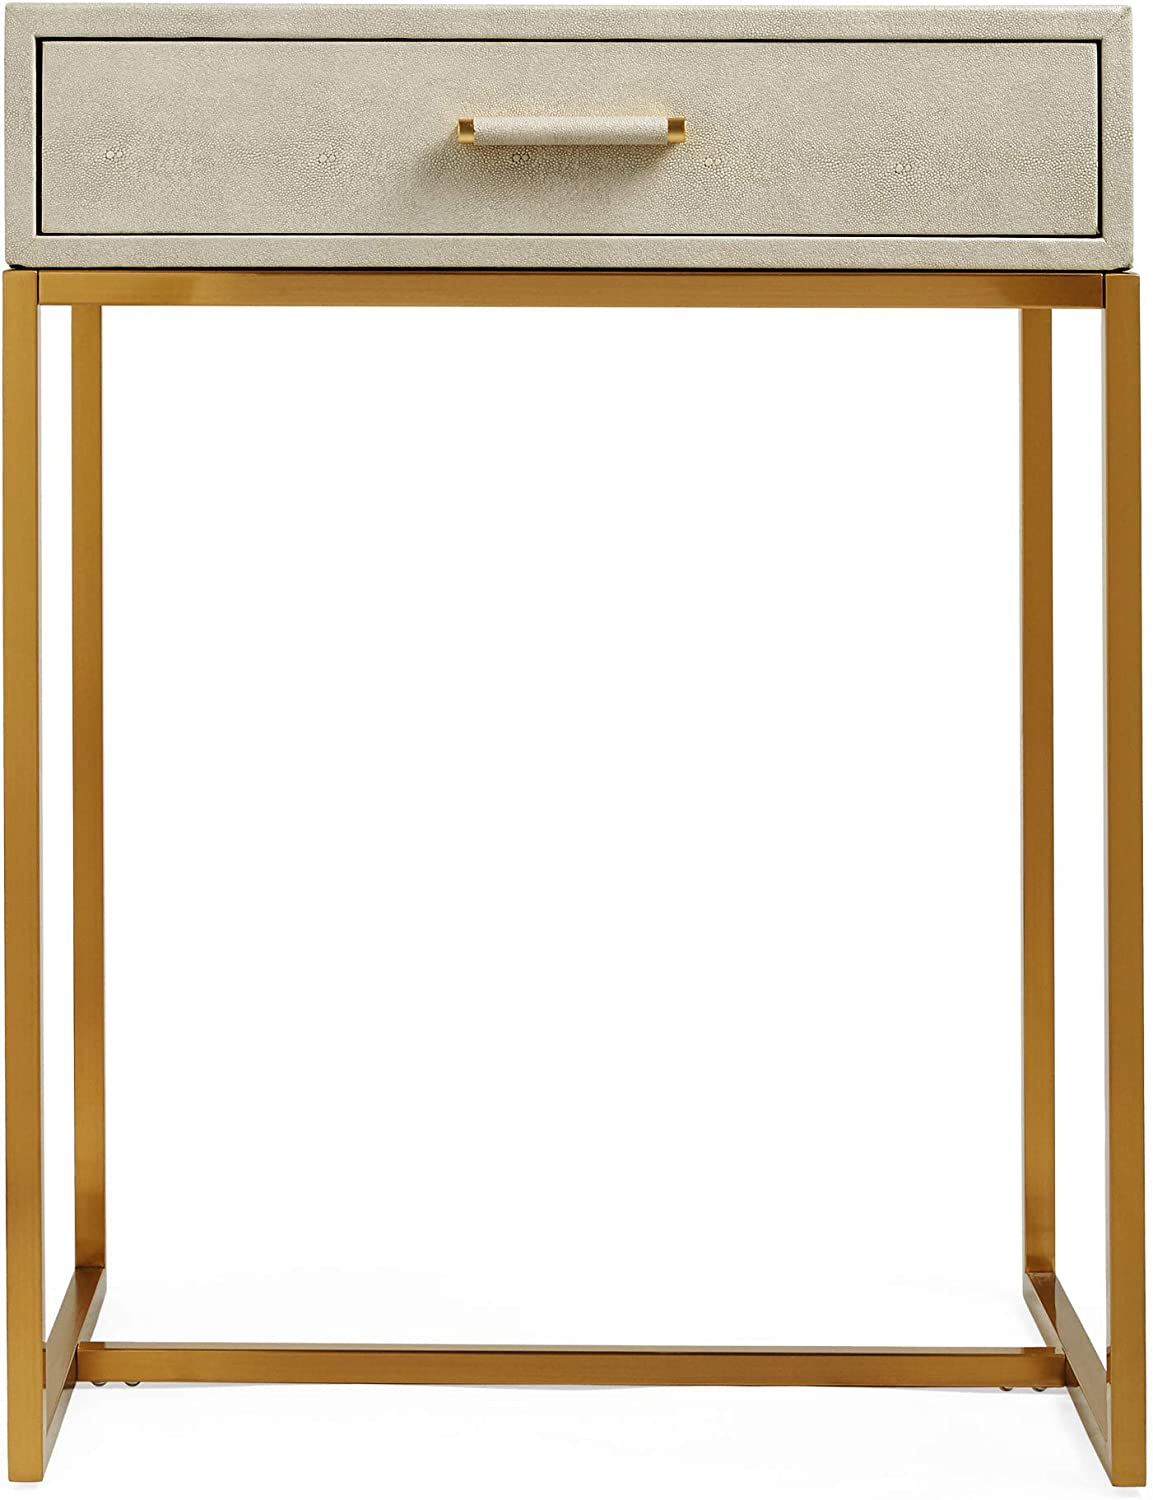 Faux Leather Compact Desk Beautify Dressing Table Office Living Room Taupe and Gold Lux Dressing Table Vanity Table Console Desk Makeup and Jewellery Storage for Bedroom